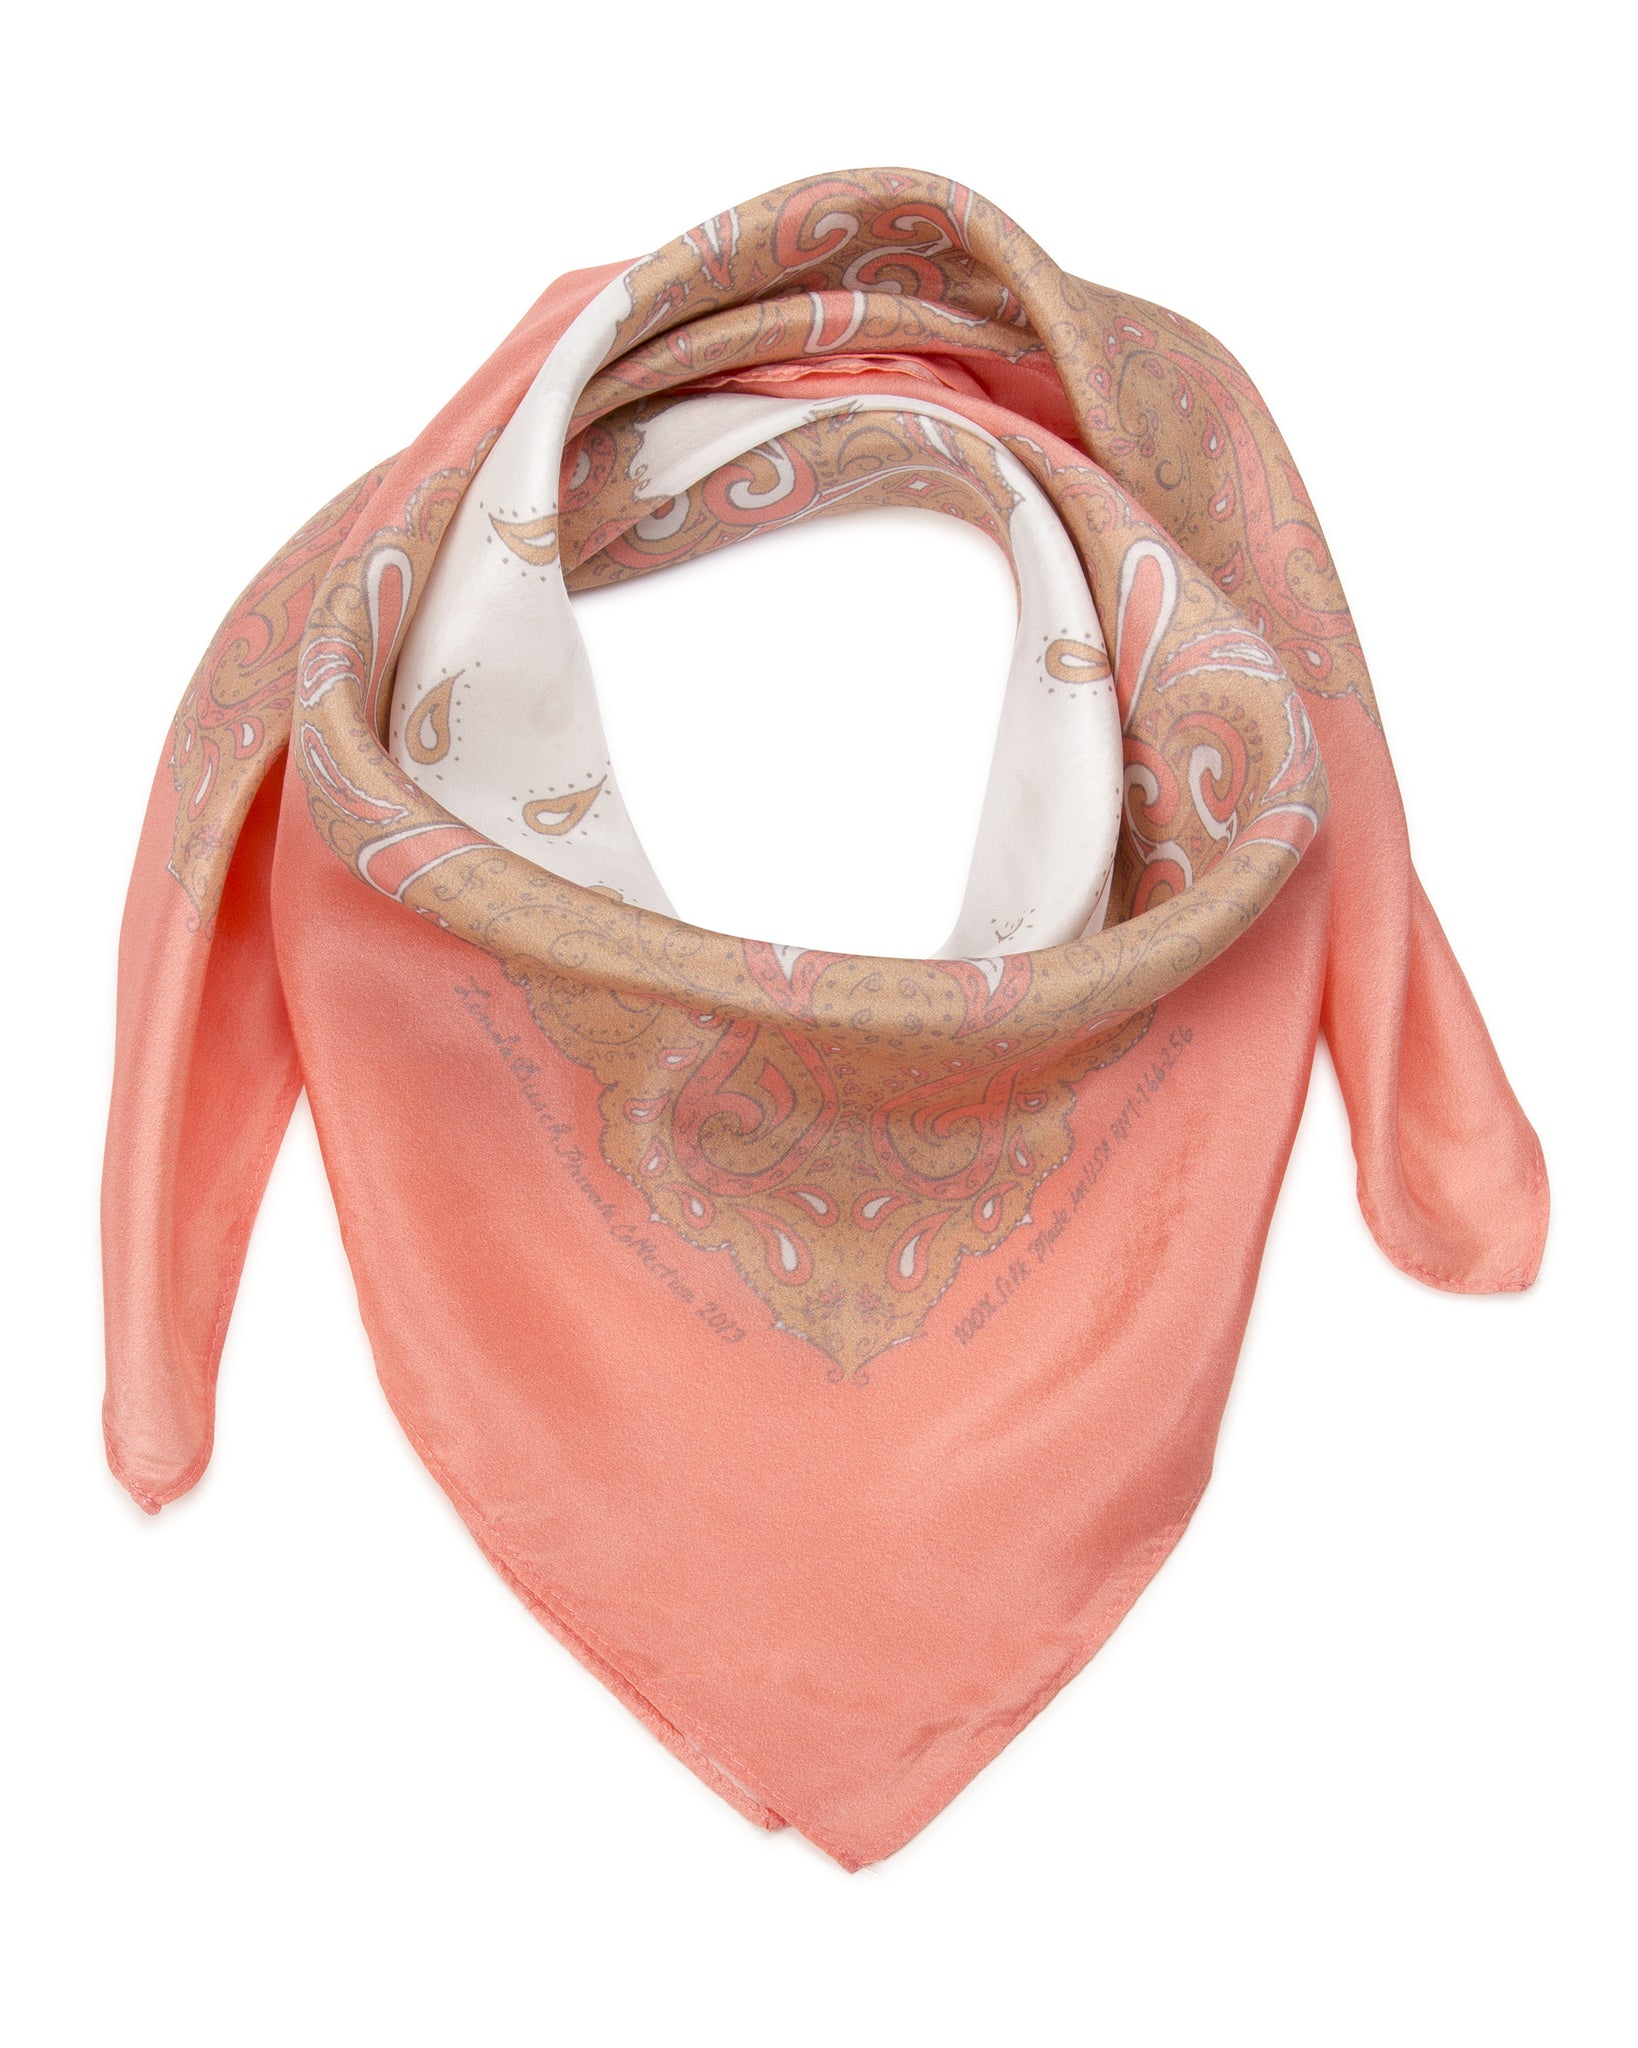 CLEARANCE SALE -Silk Bandanna in Salmon, Tan, Brown, White